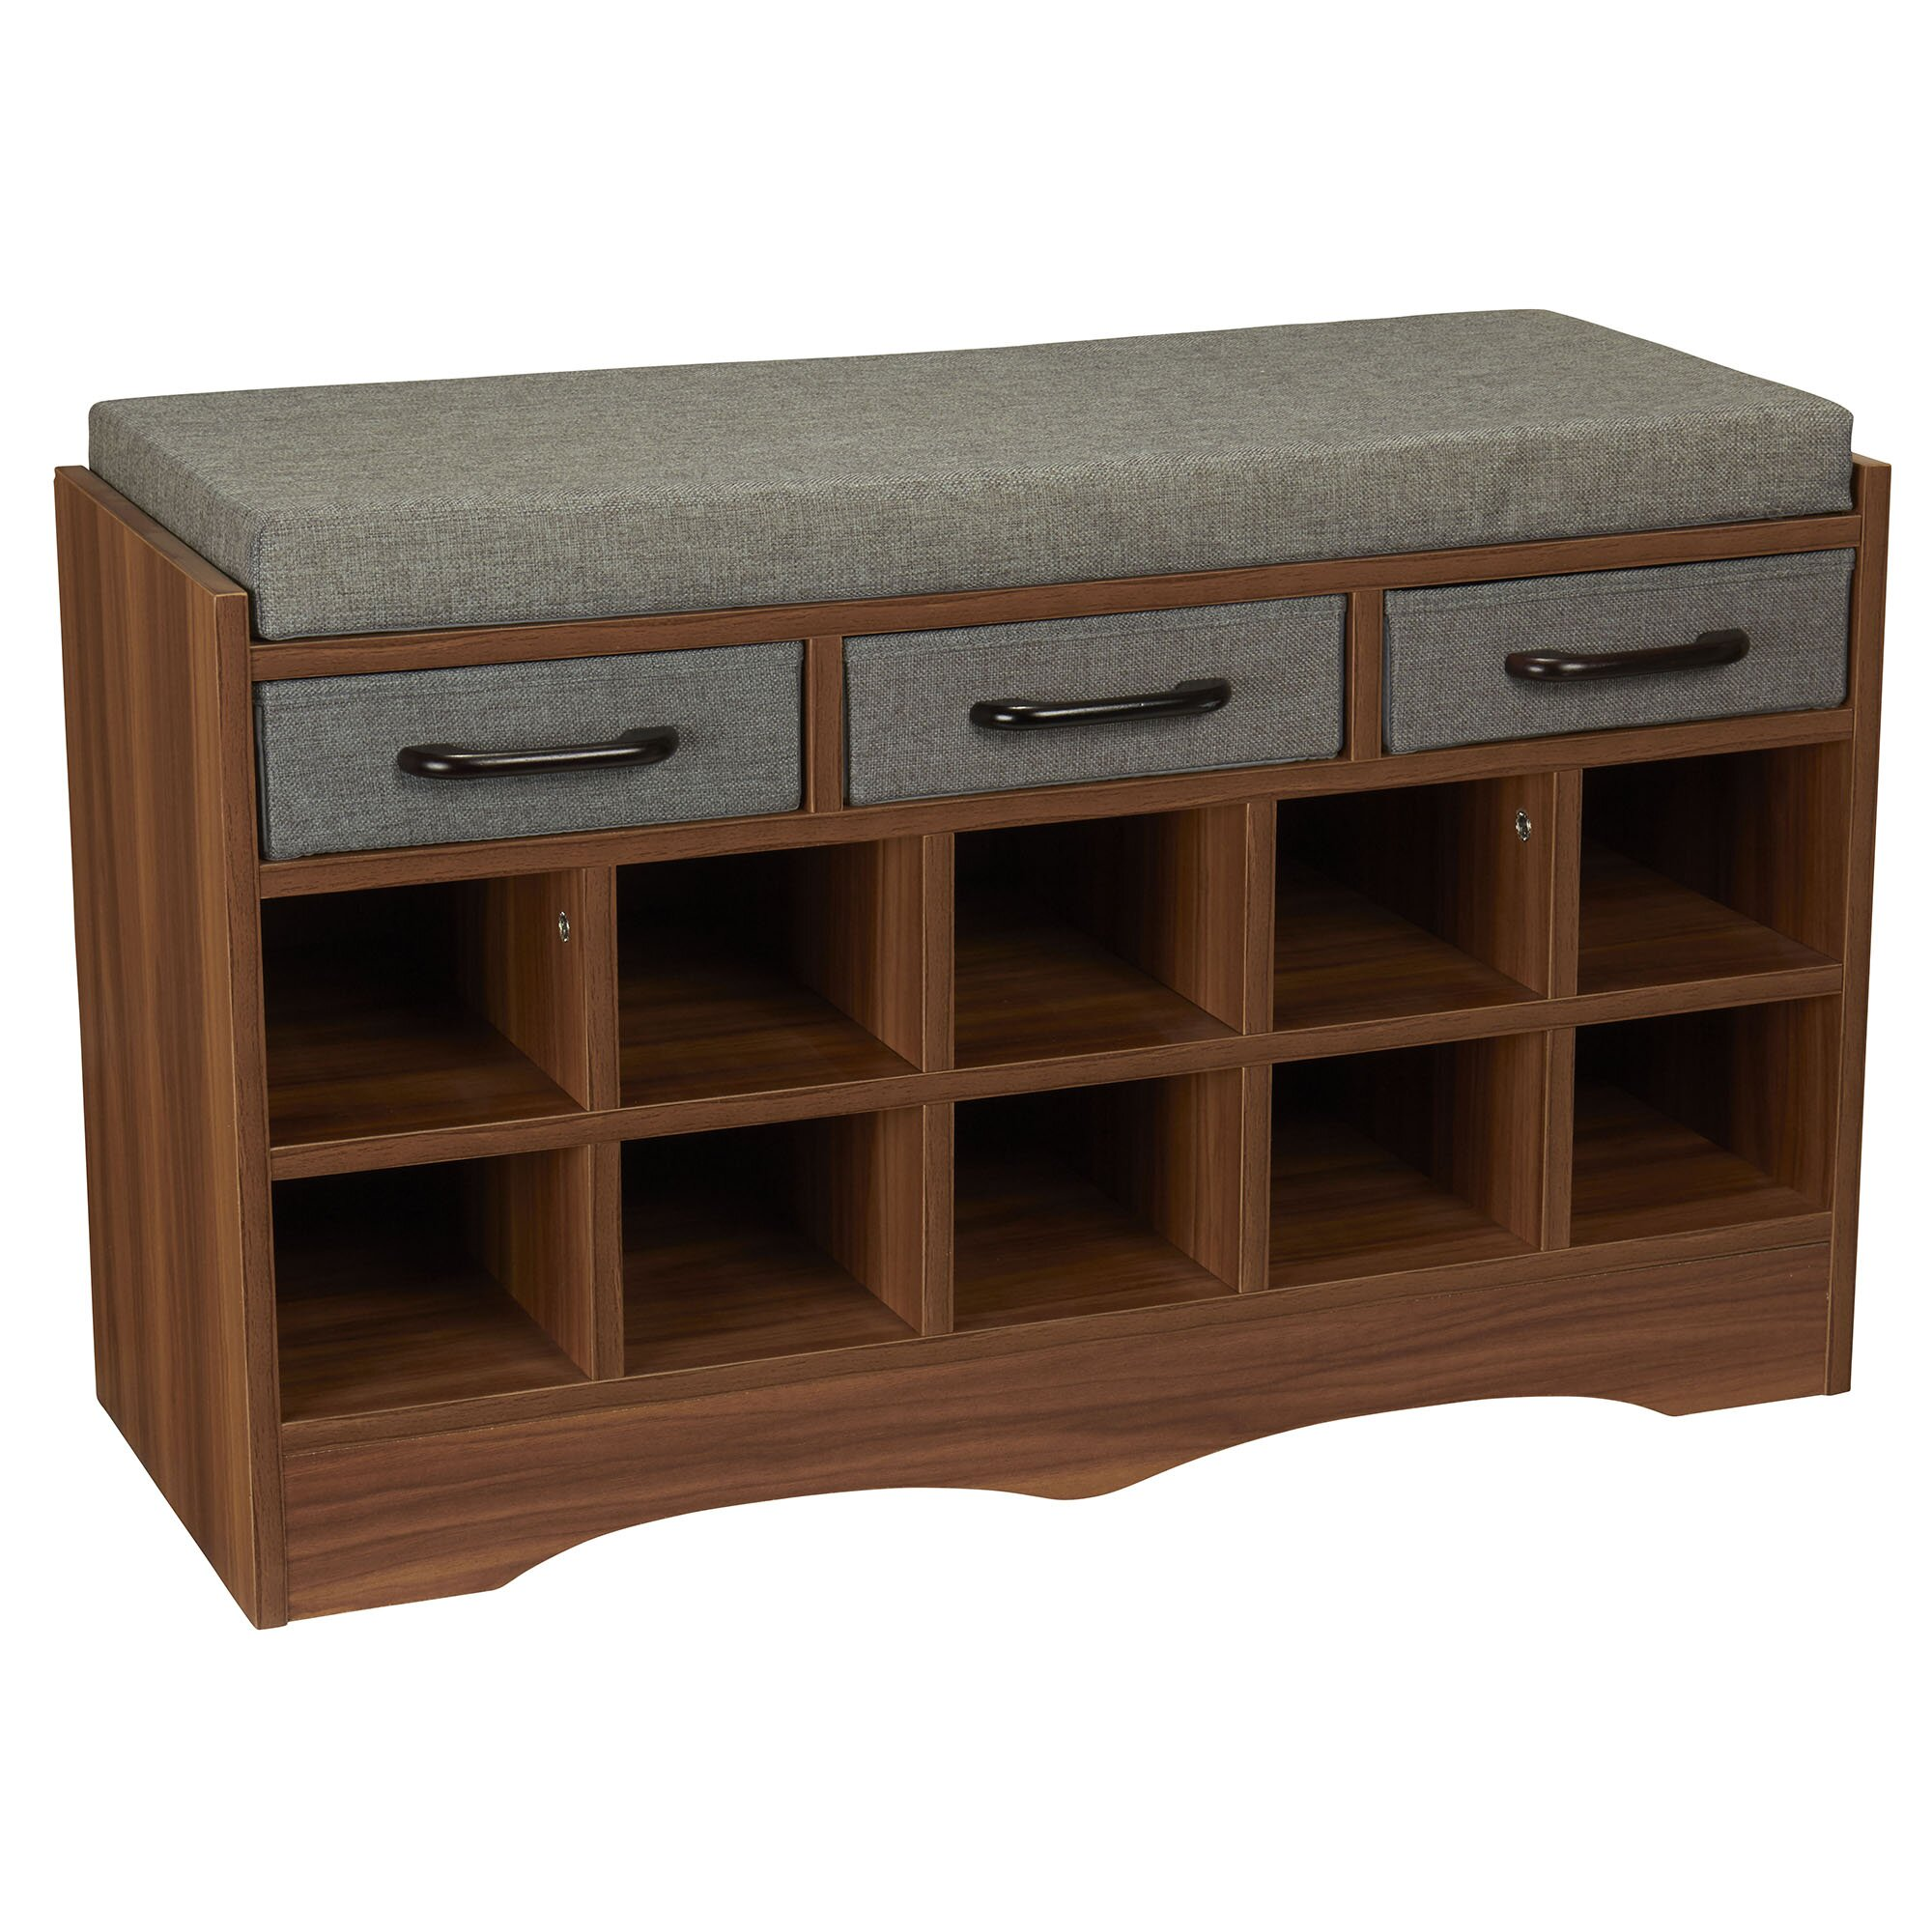 Household Essentials Entryway Shoe Storage Bench Reviews Wayfair